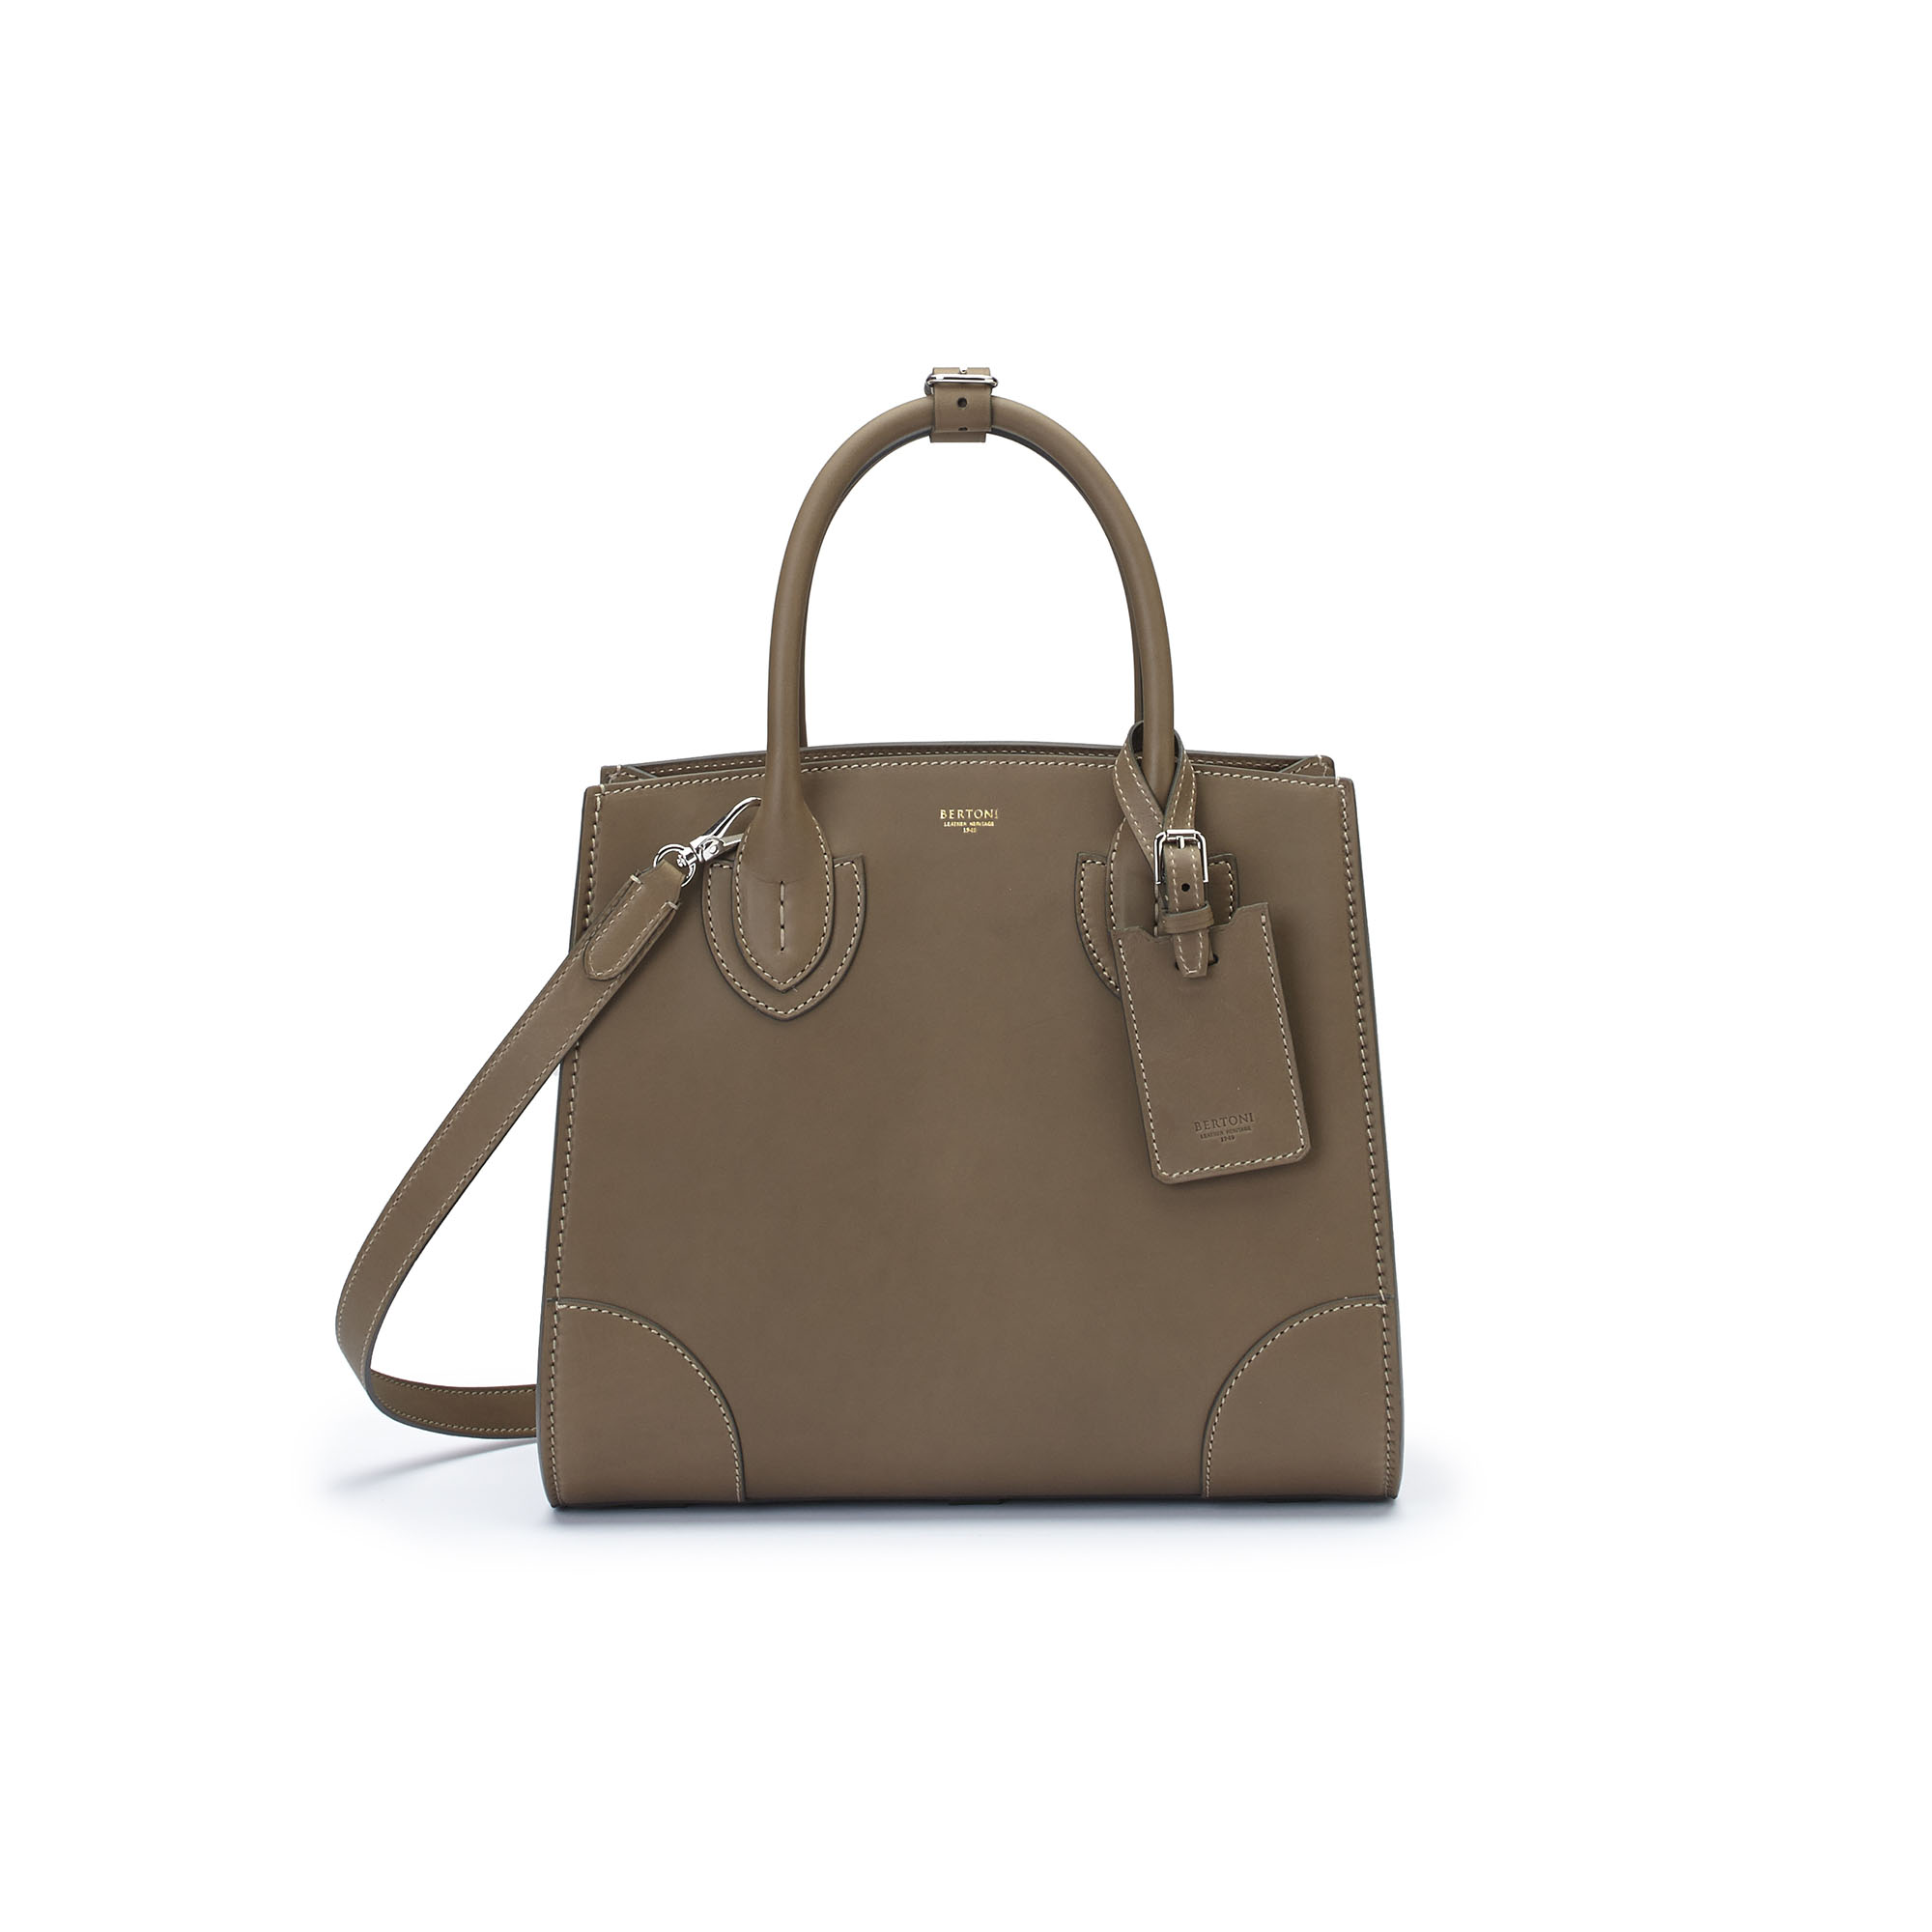 The military green french calf Darcy bag by Bertoni 1949 03